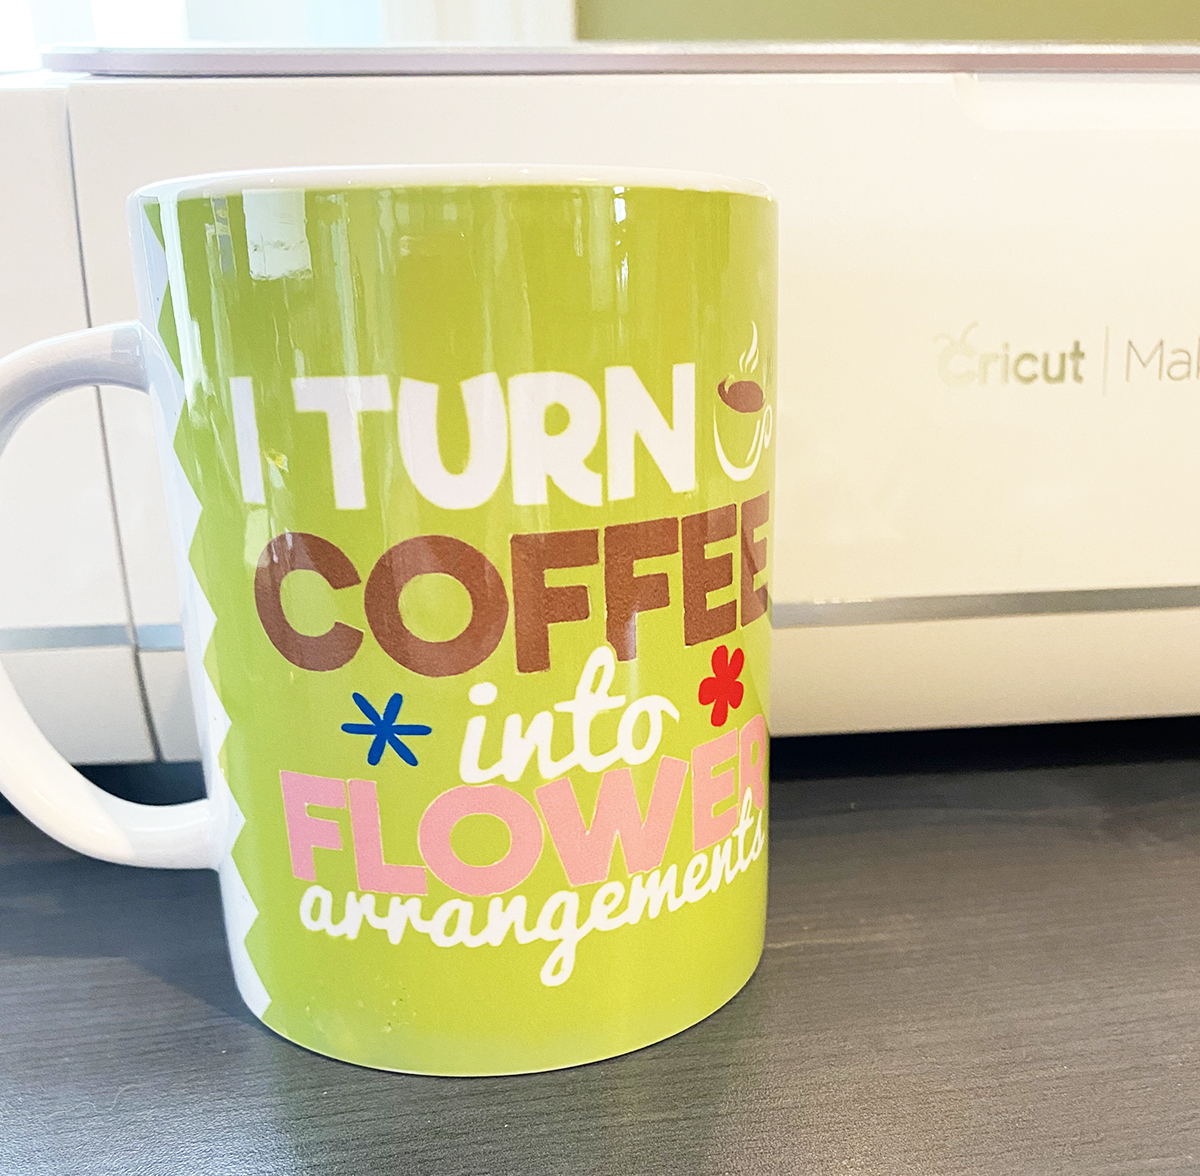 Mug with Cricut Maker in the background